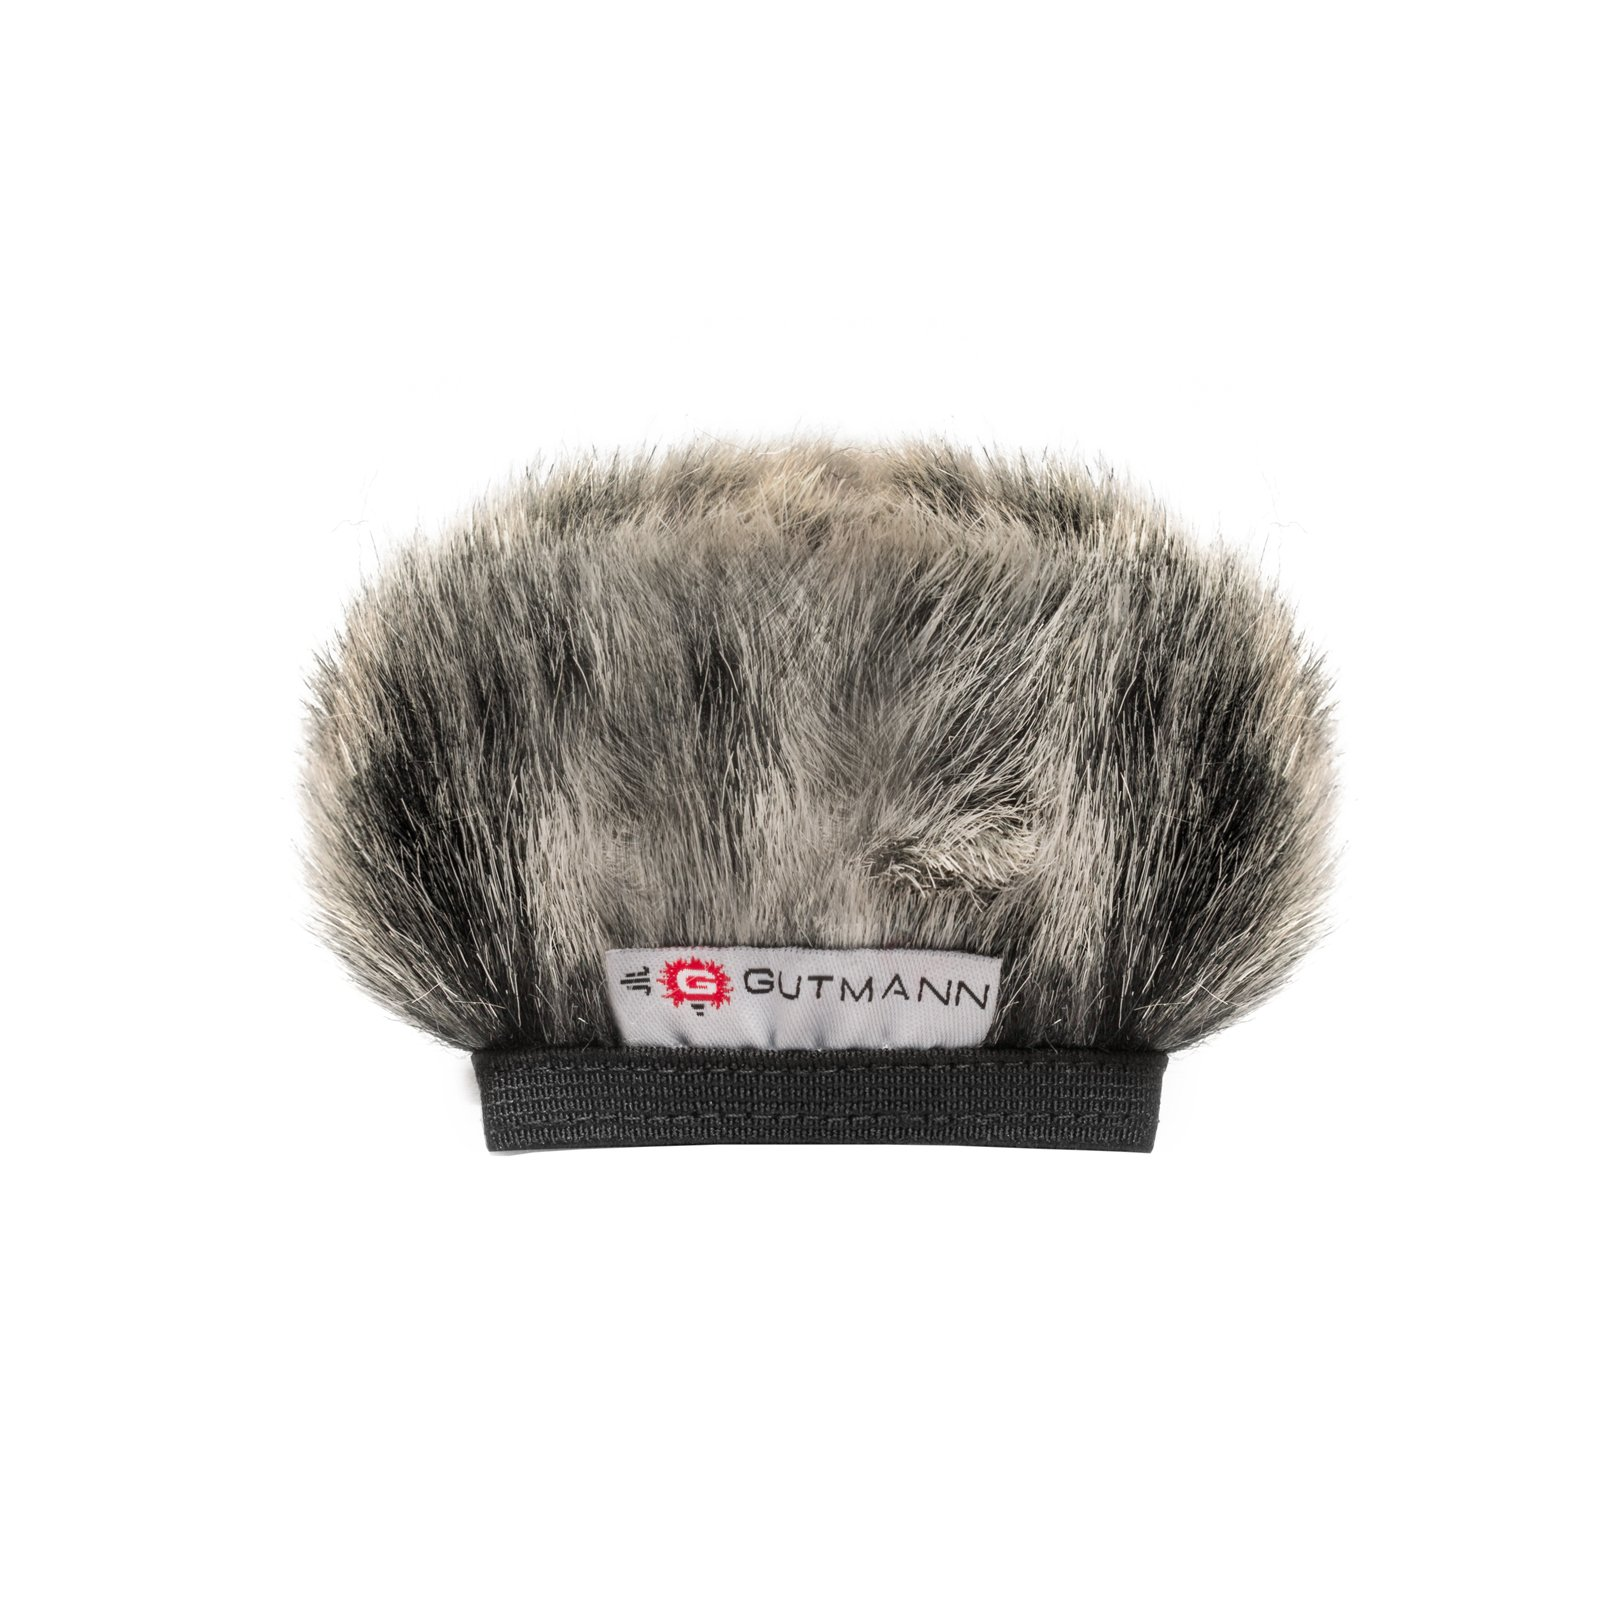 Gutmann Fur Microphone Windshield Windscreen for Tascam DR-03 Special Model HUSKY (Limited Edition) by Gutmann